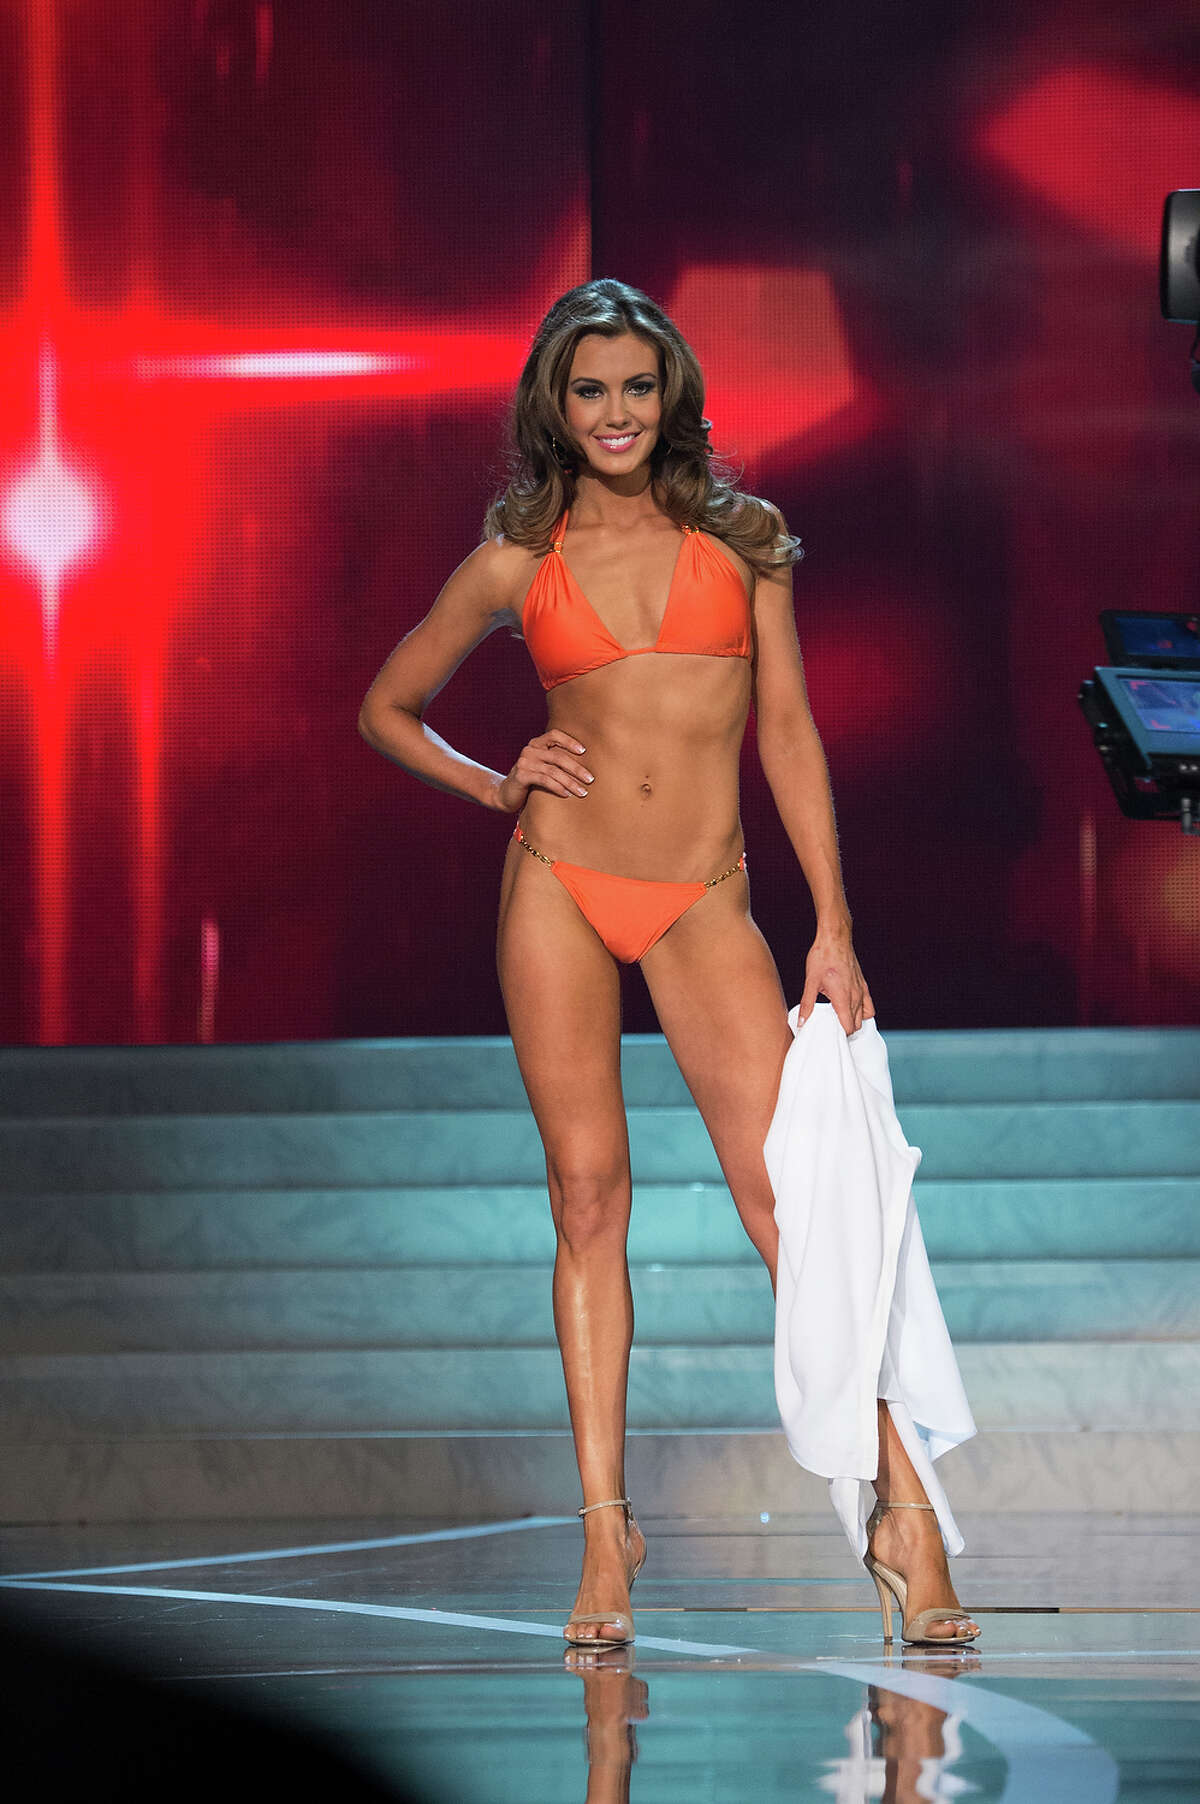 Miss Connecticut USA 2013, Erin Brady, competes in her ViX Paula Hermanny swimsuit during the 2013 MISS USA Competition at PH Live in Las Vegas, Nevada on Sunday June 16, 2013. She is competing for the title of Miss USA 2013, the coveted Miss USA Diamond Nexus Crown, and the chance to represent the USA at the 2013 MISS UNIVERSE Competition in November. HO/Miss Universe Organization L.P., LLLP